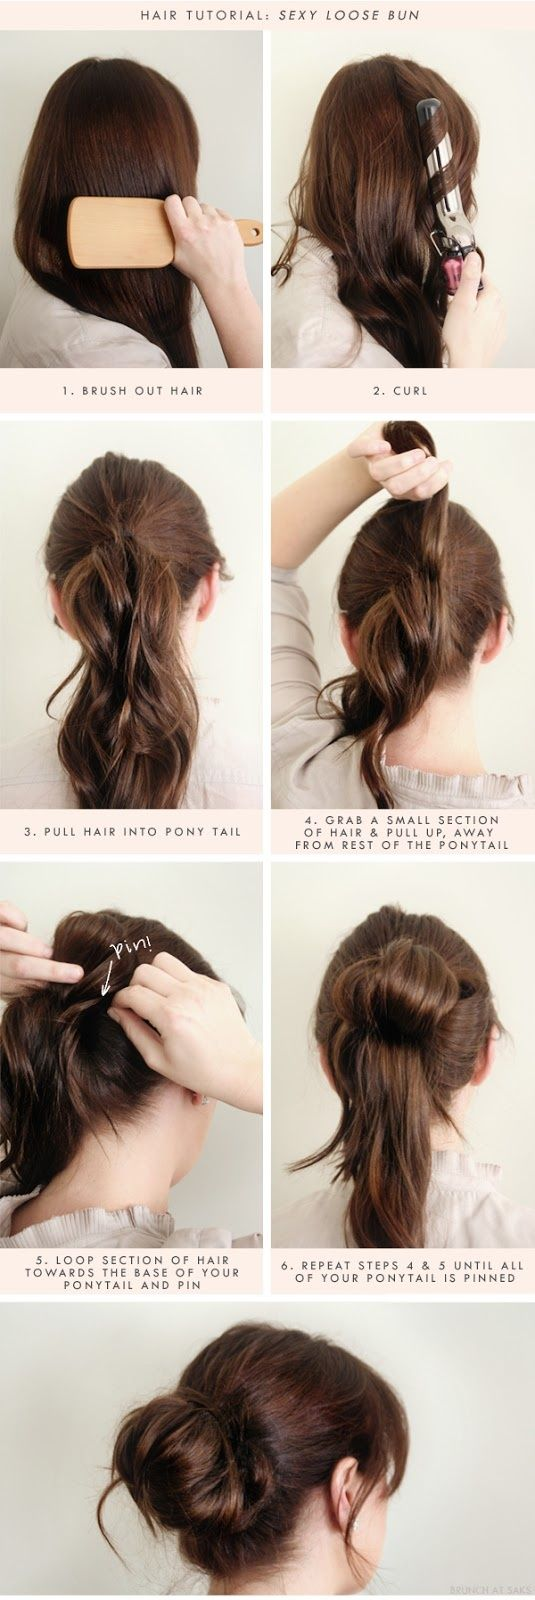 10 Hair Tutorials For Buns With Images Loose Hairstyles Loose Bun Hairstyles Hair Bun Tutorial